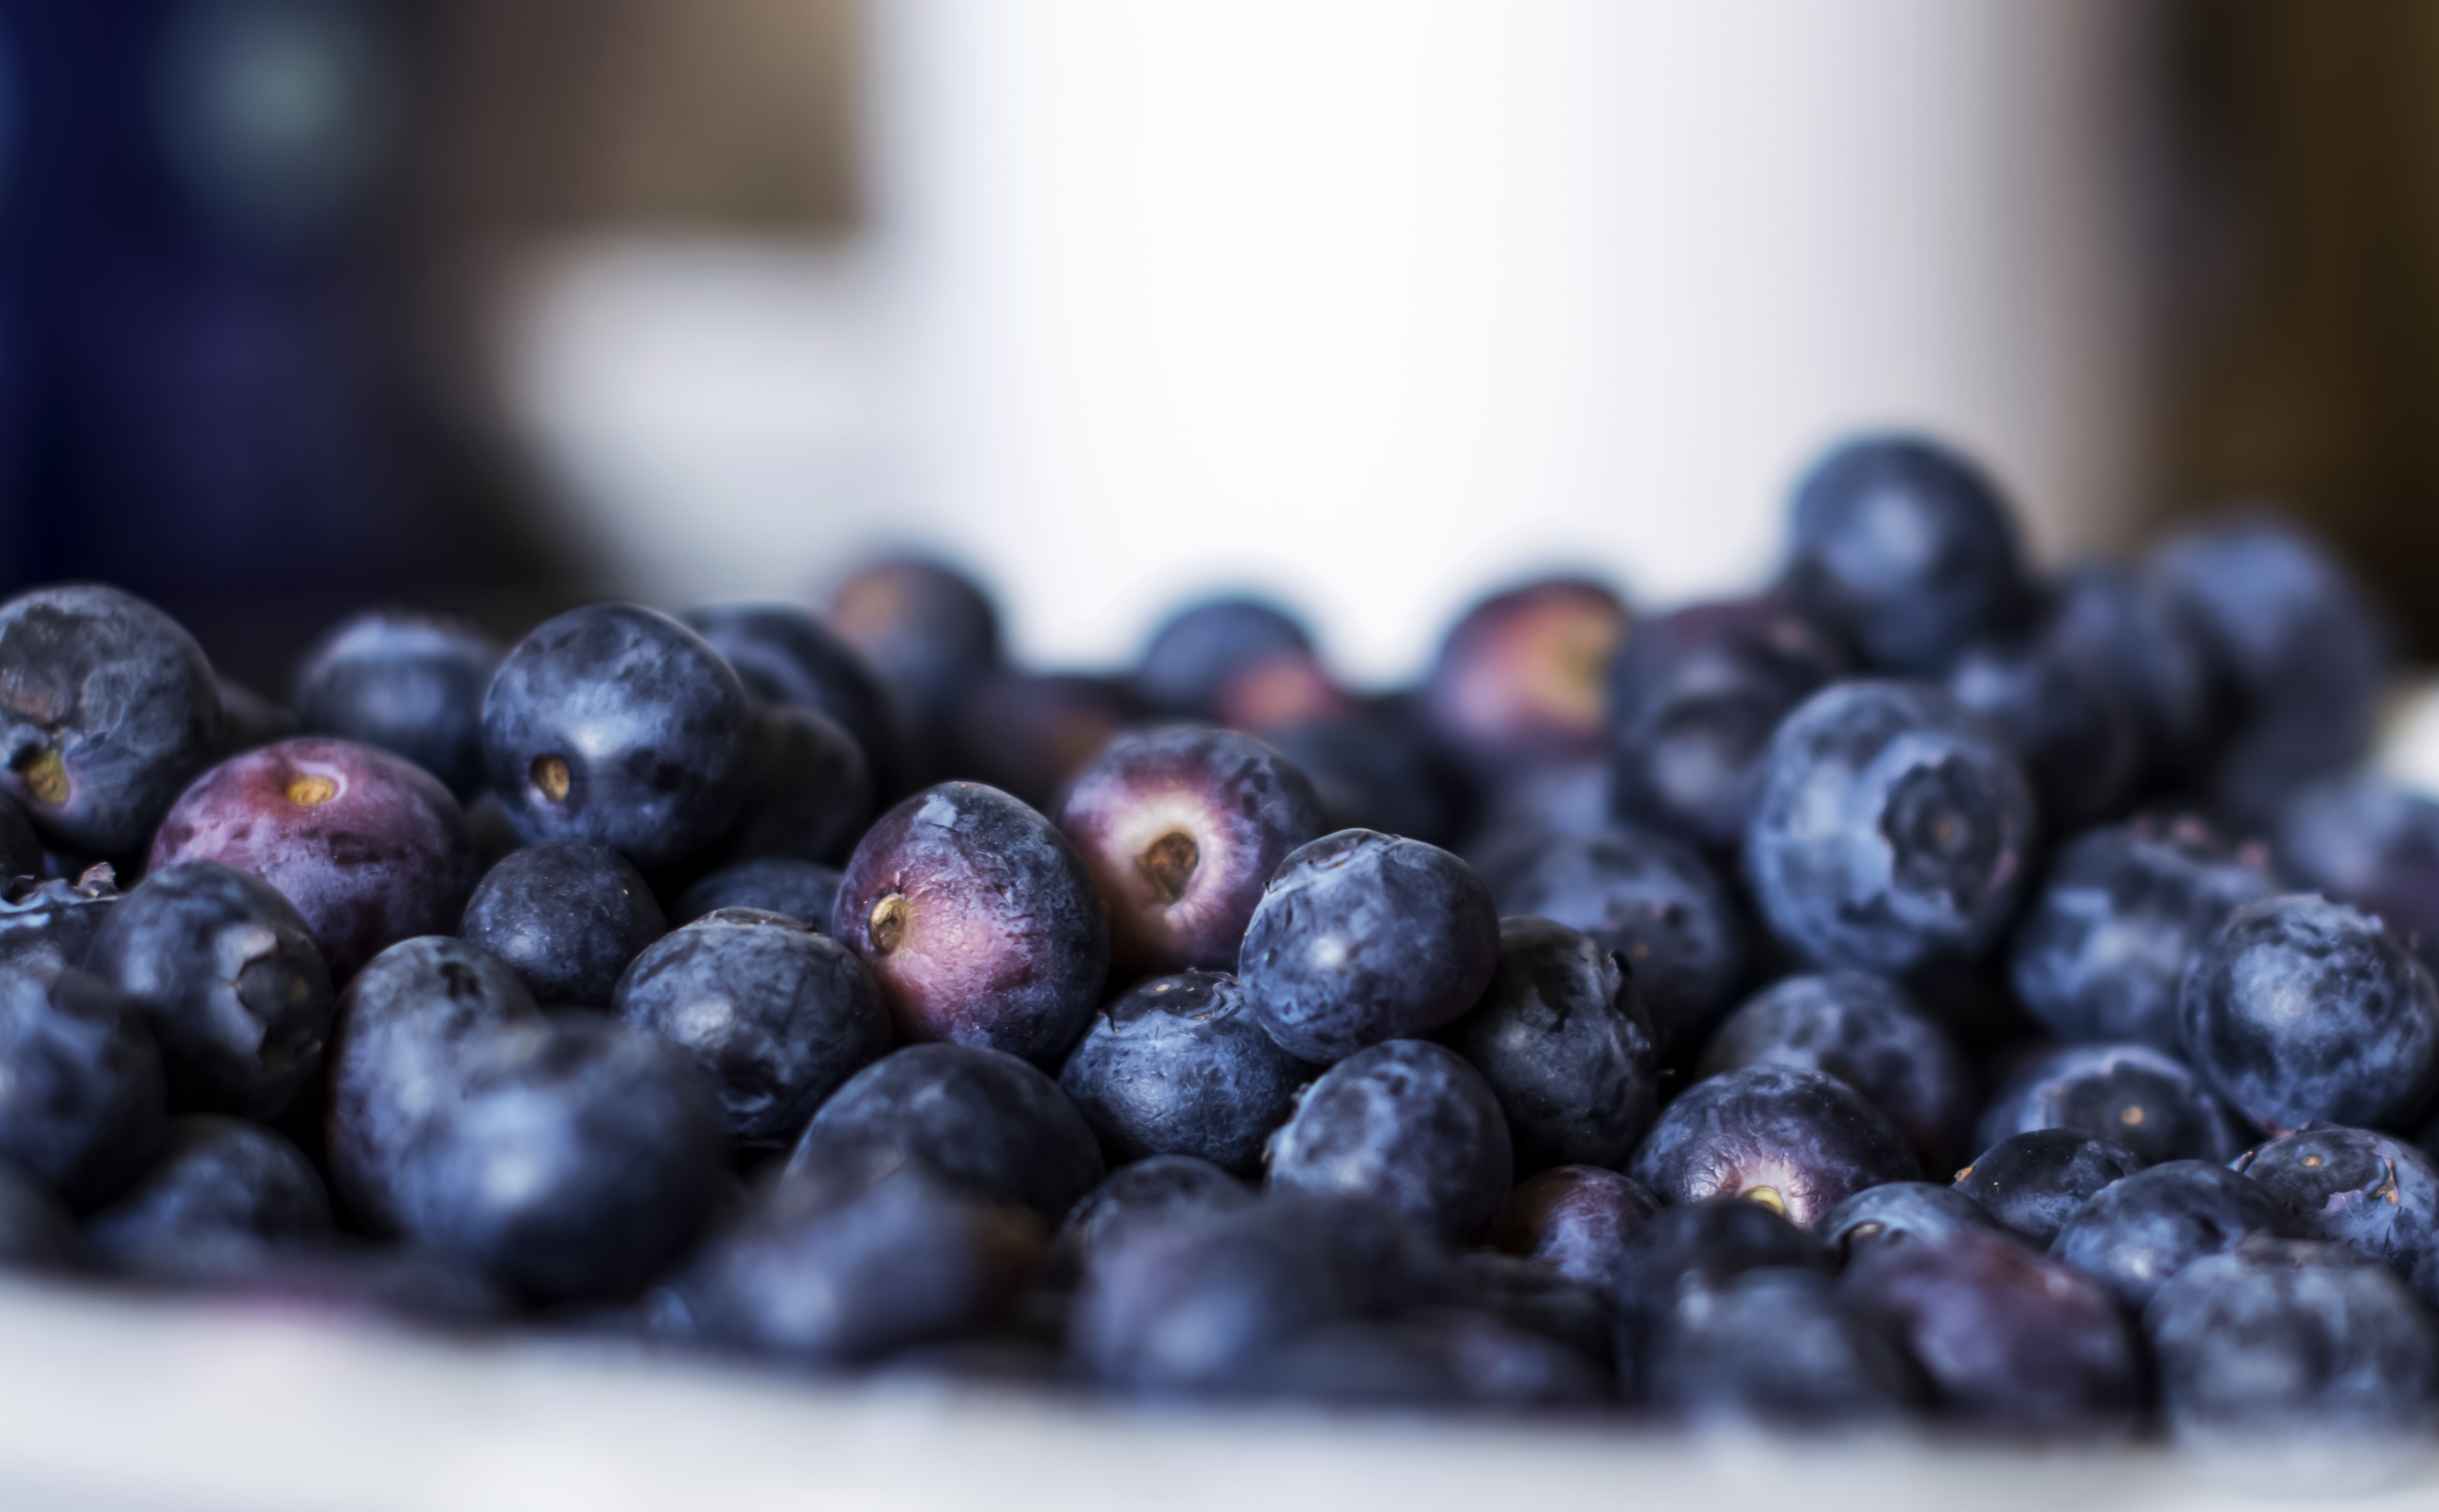 Close-up of a large amount of blueberries in a bowl